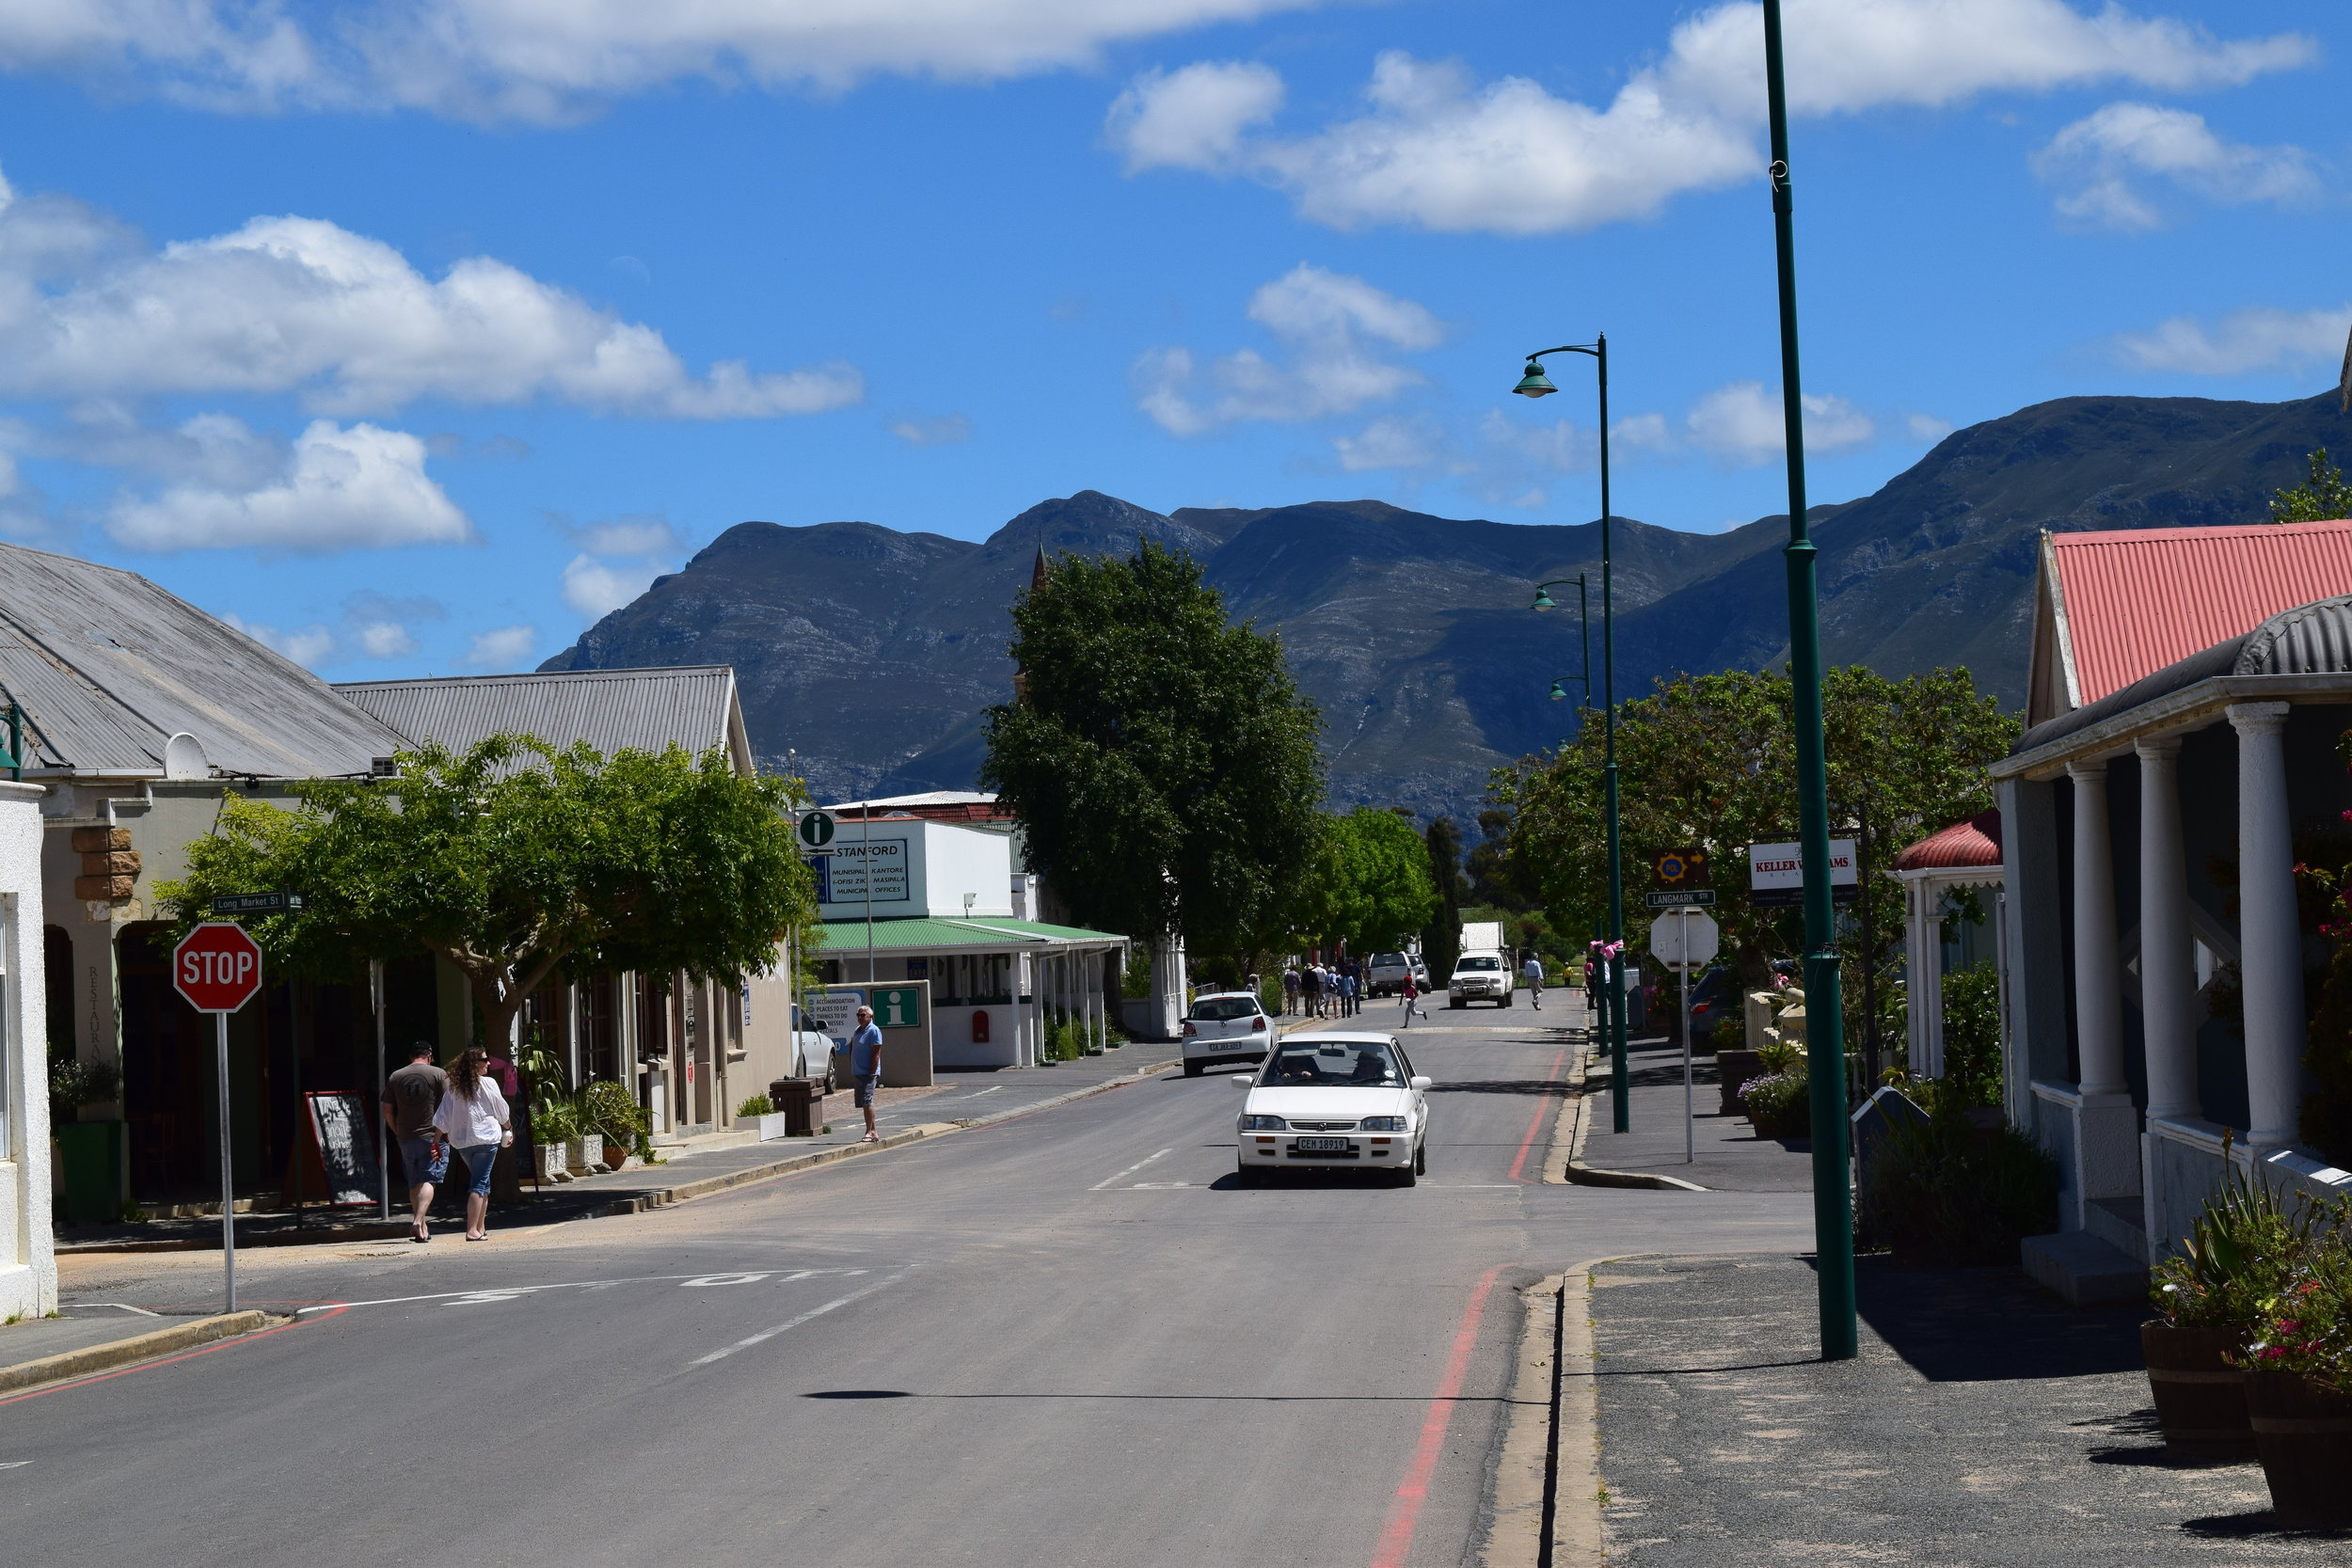 Passing through a small town in South Africa